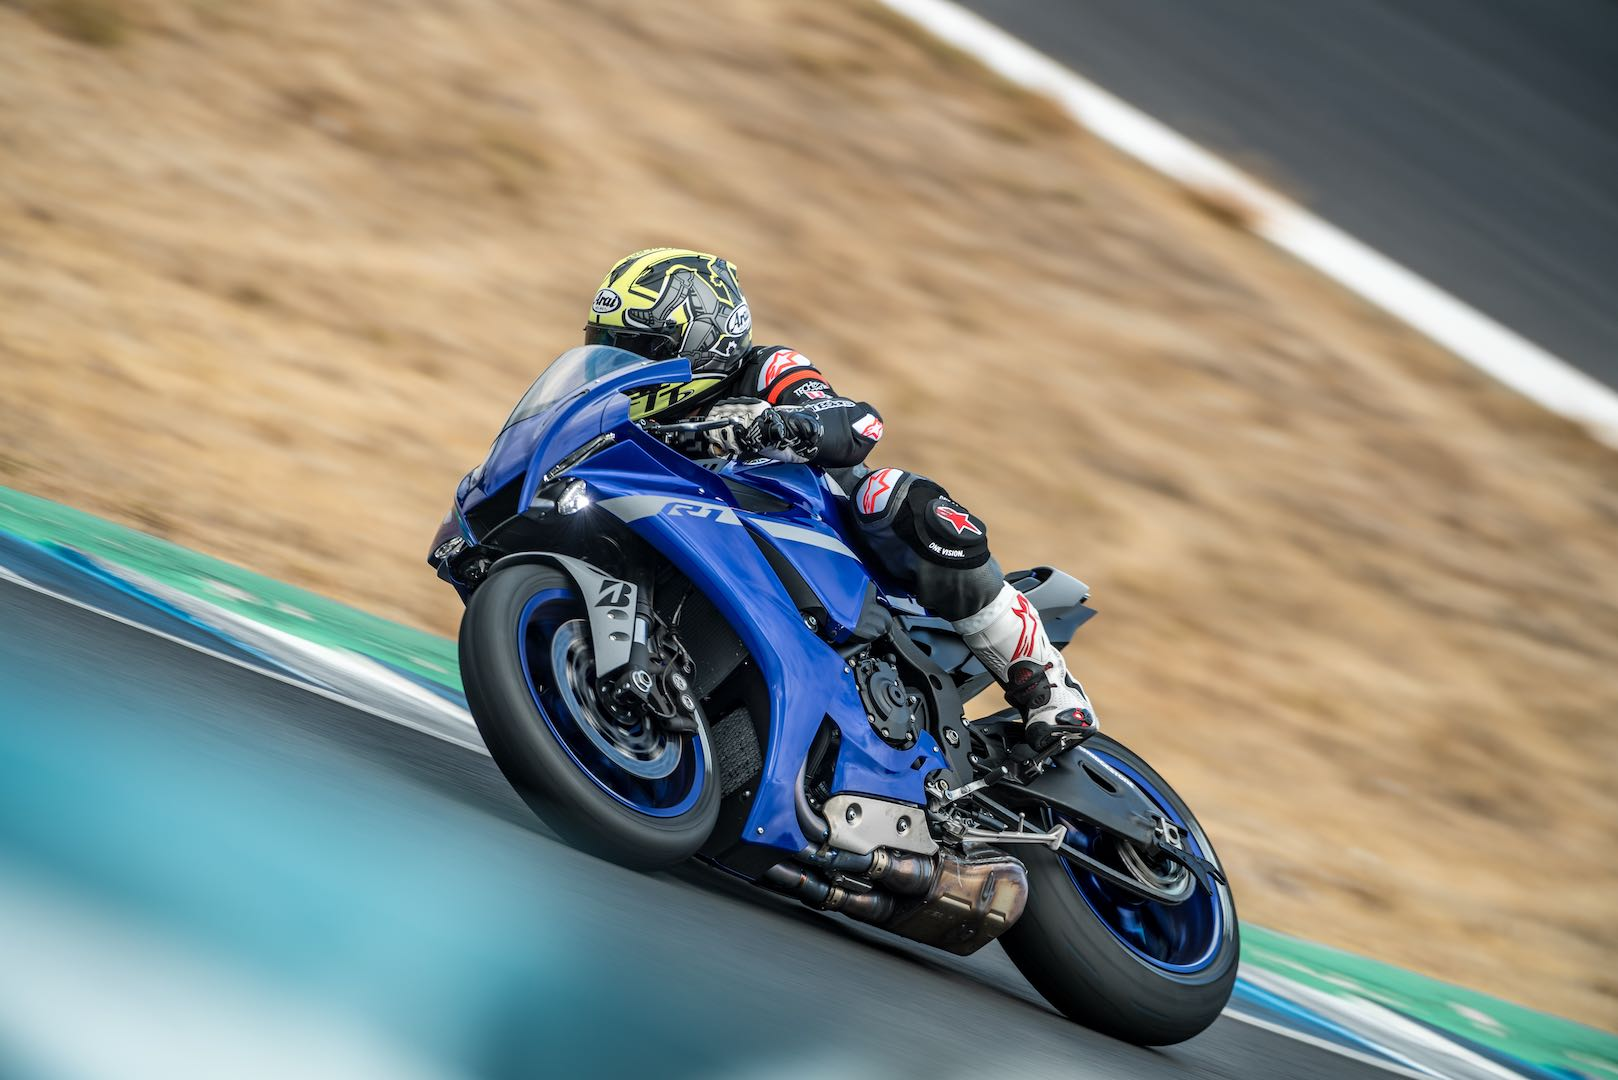 2020 Yamaha YZF-R1 and YZF-R1M Review (23 Fast Facts)